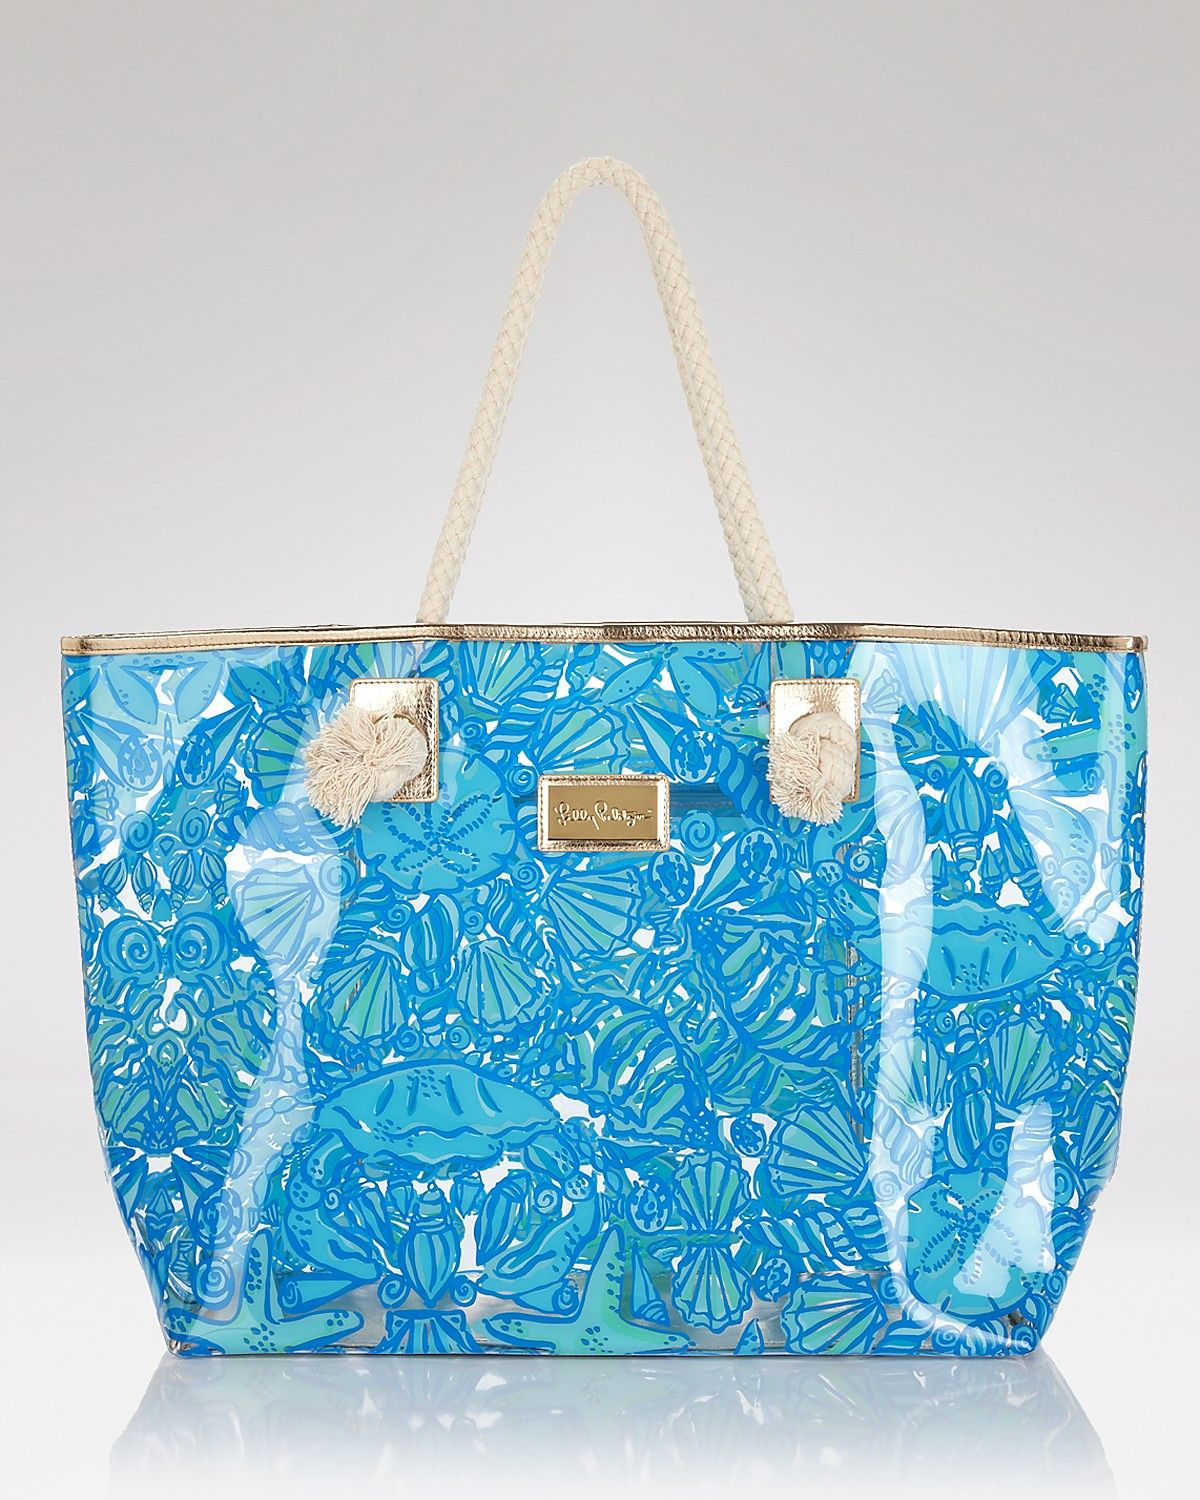 Sailor S Valentine Lilly Pulitzer Tote Love This For The Beach Getaway